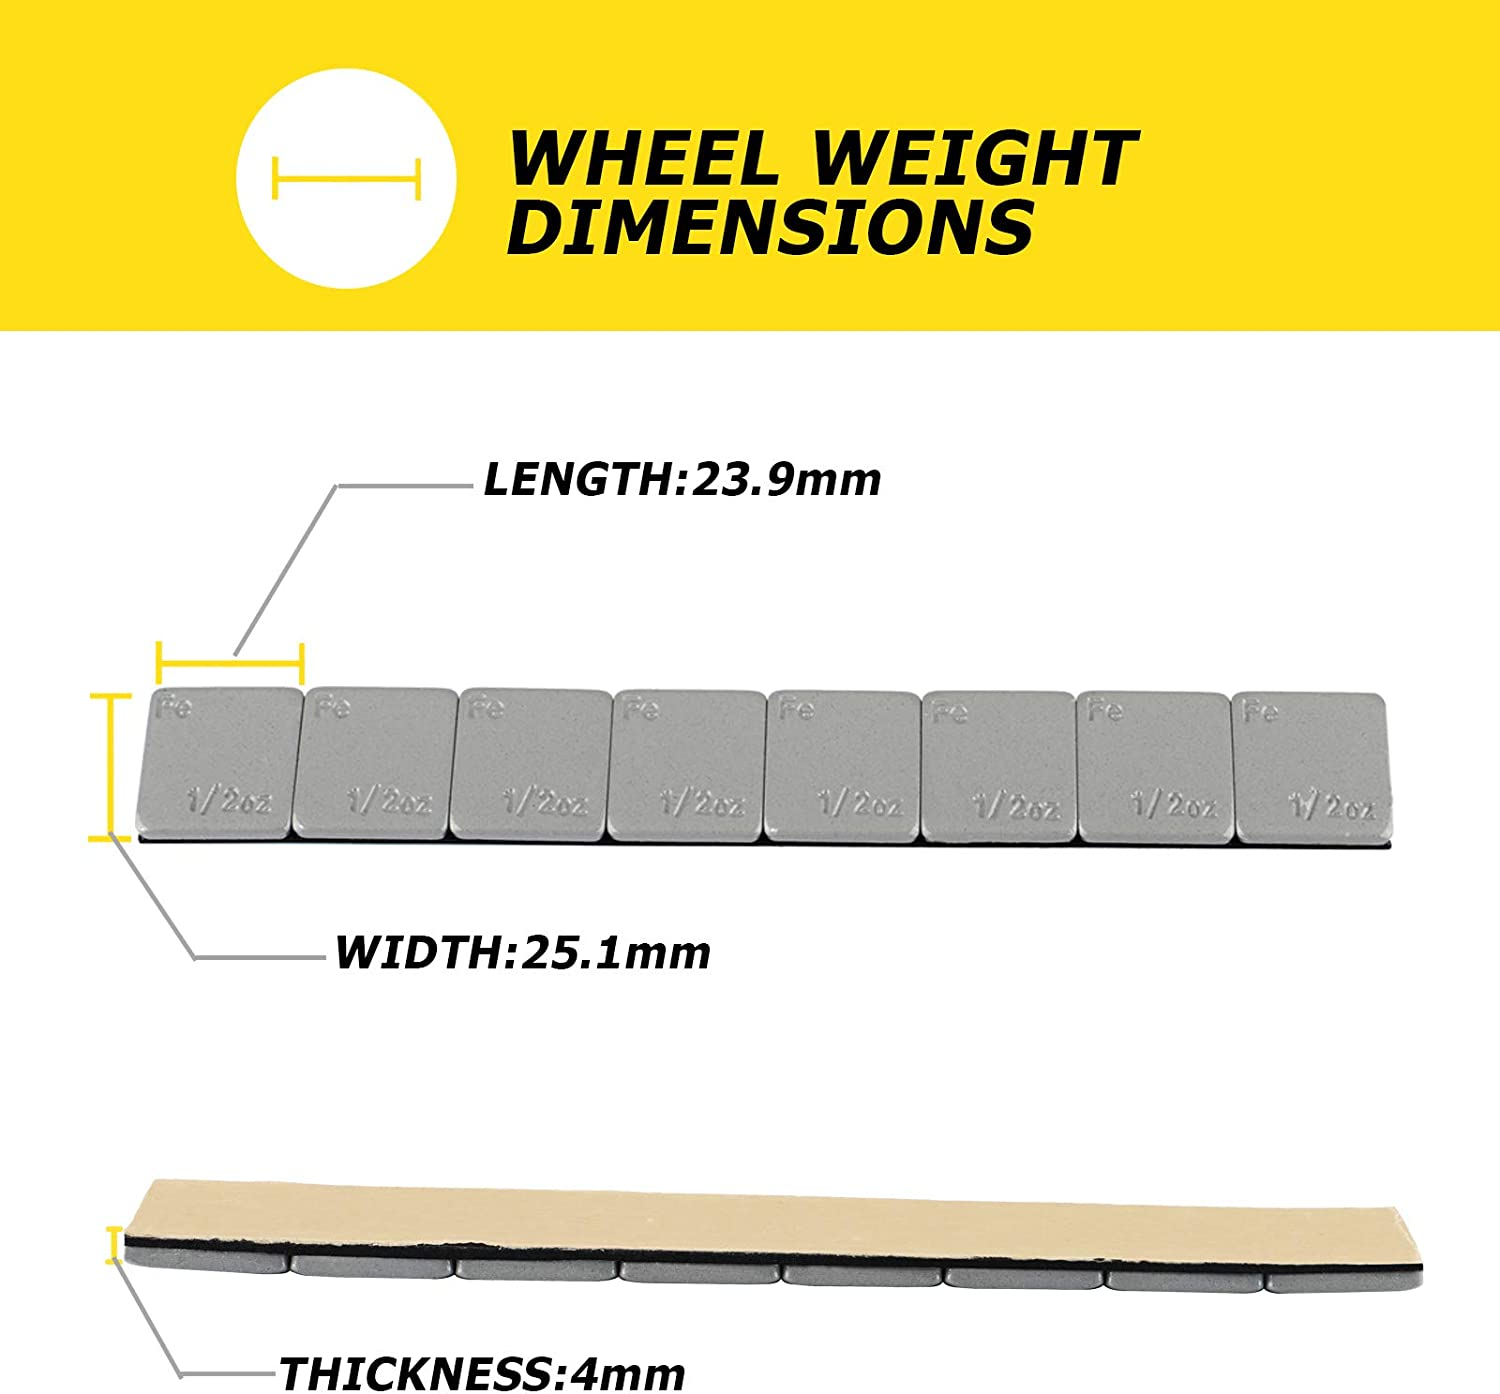 288pcs and Others Trucks 0.25 Ounce Stick on Wheel Weights for Cars Motorcycle with Strong Black Adhesive 72 oz//Box SUVs Rying Wheel Weights Gray 1//4oz